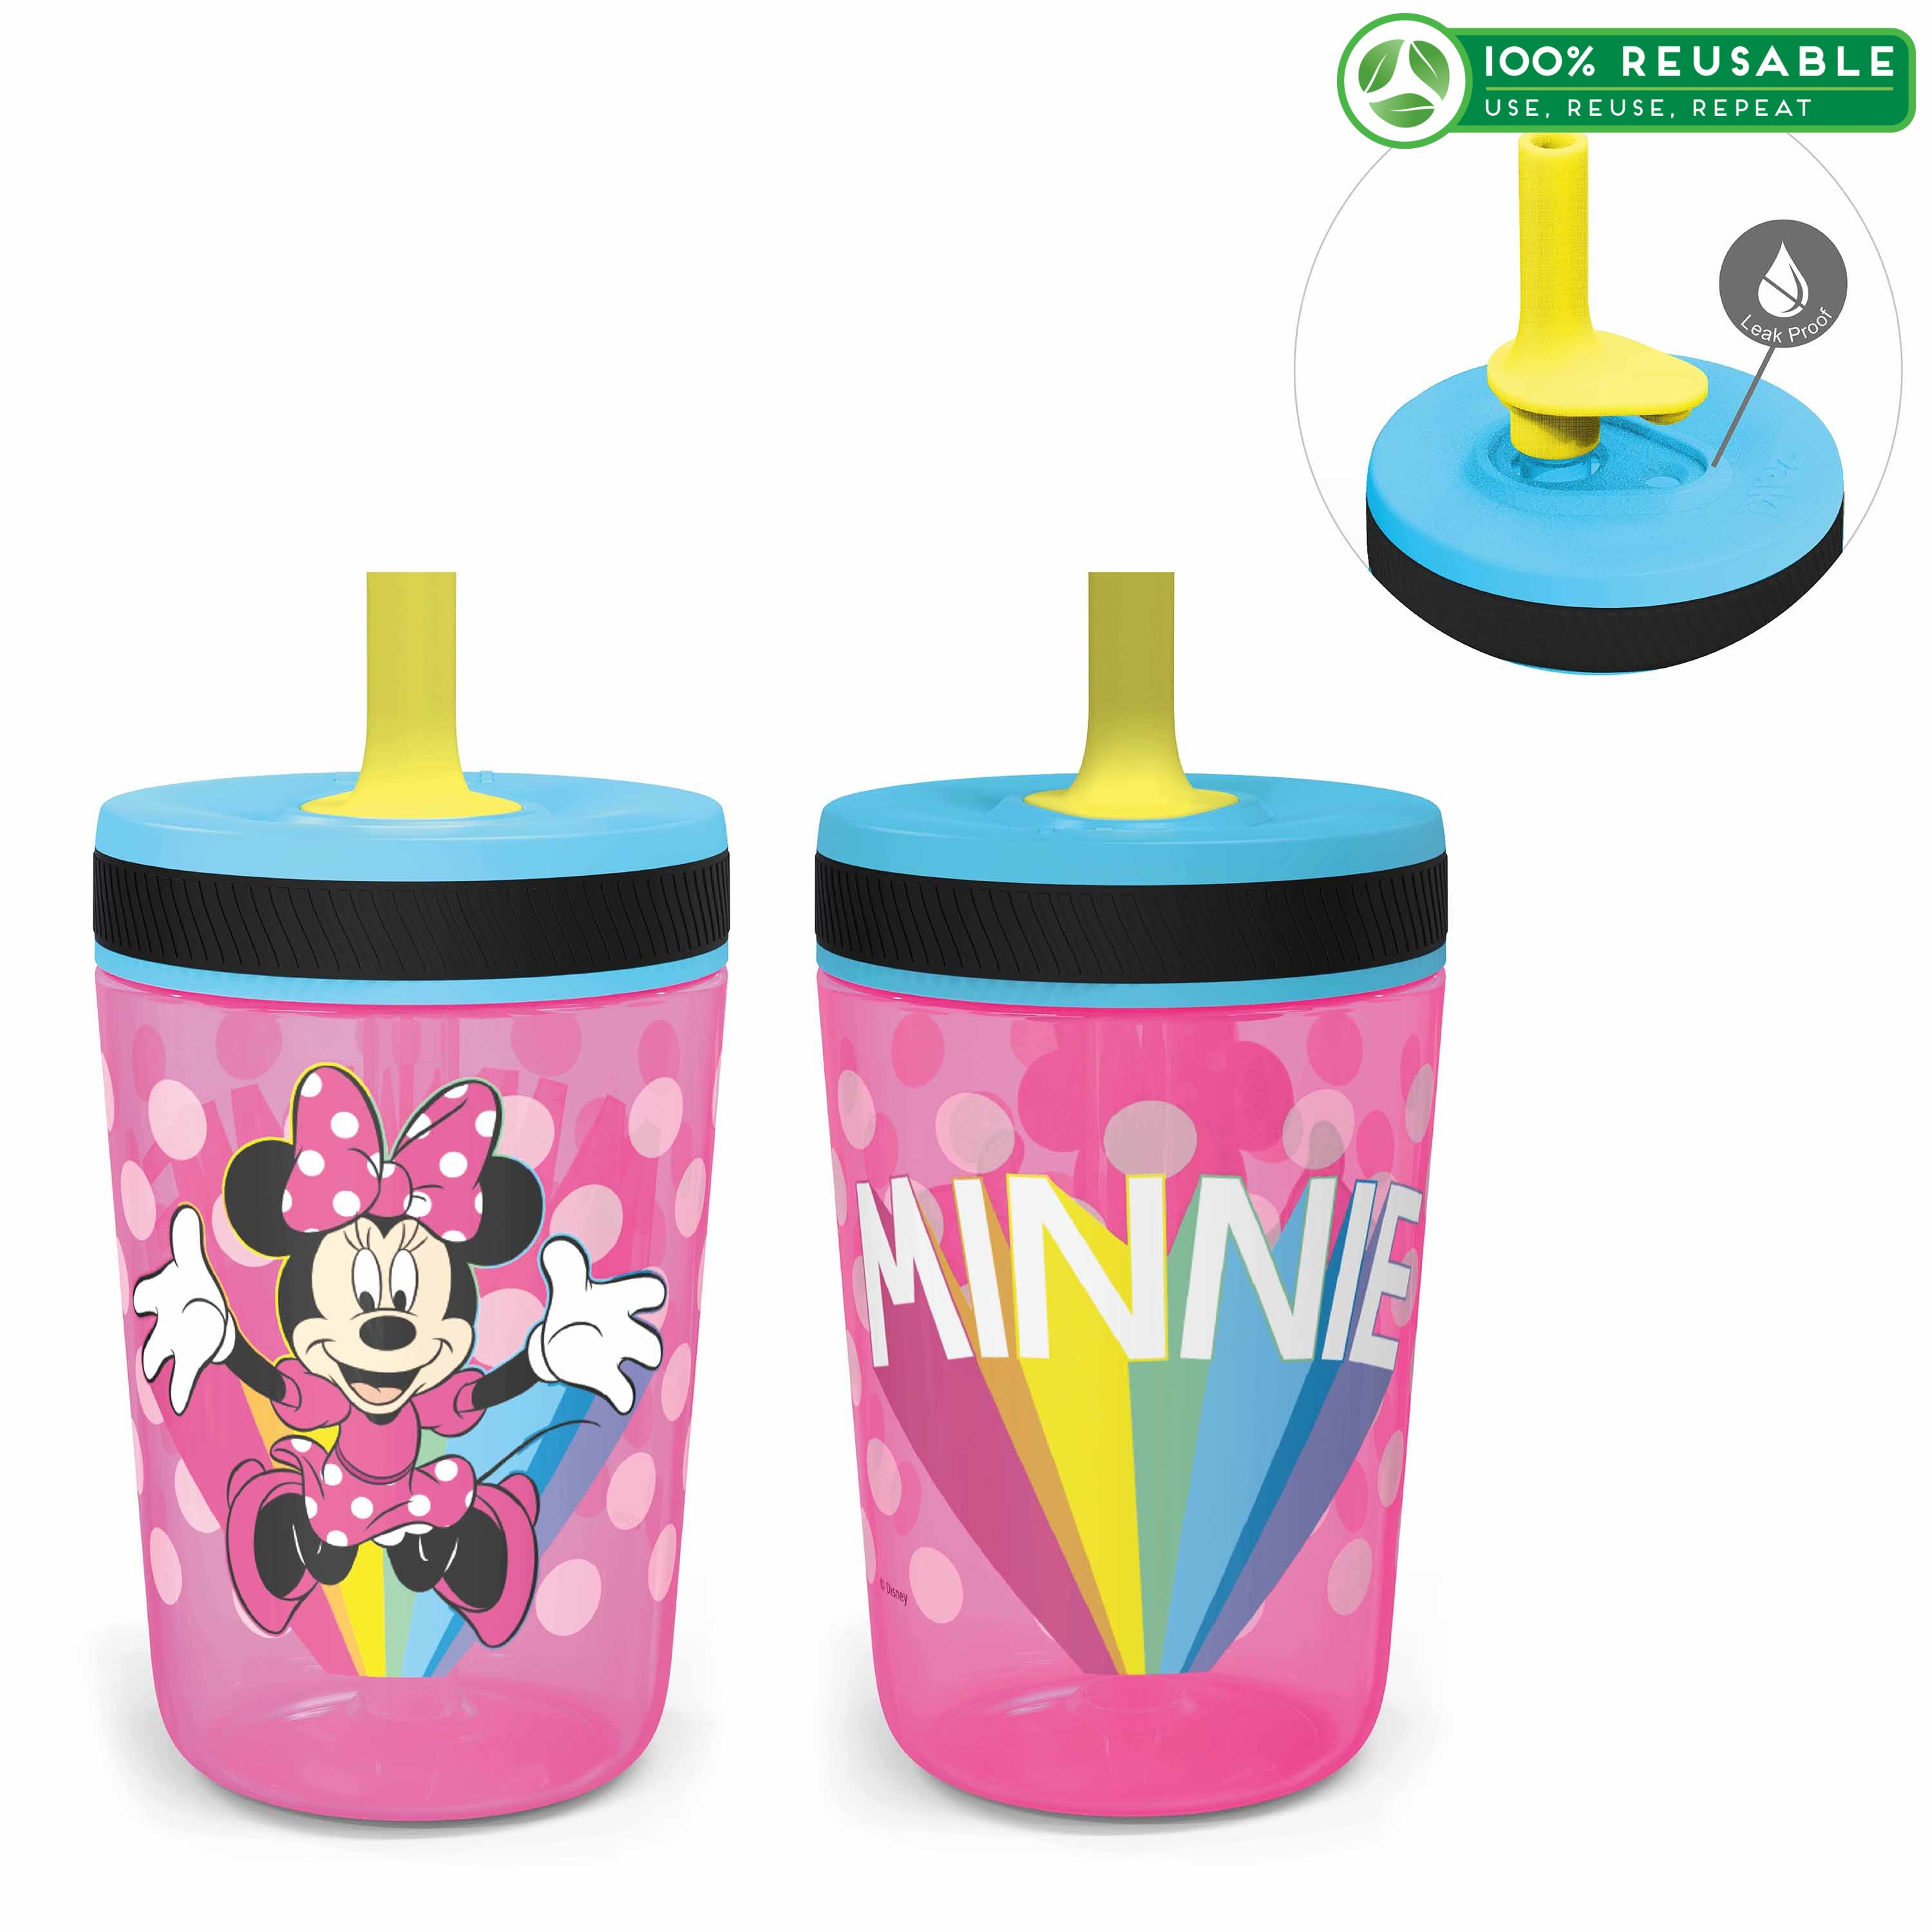 Disney 15  ounce Plastic Tumbler, Minnie Mouse, 2-piece set slideshow image 1